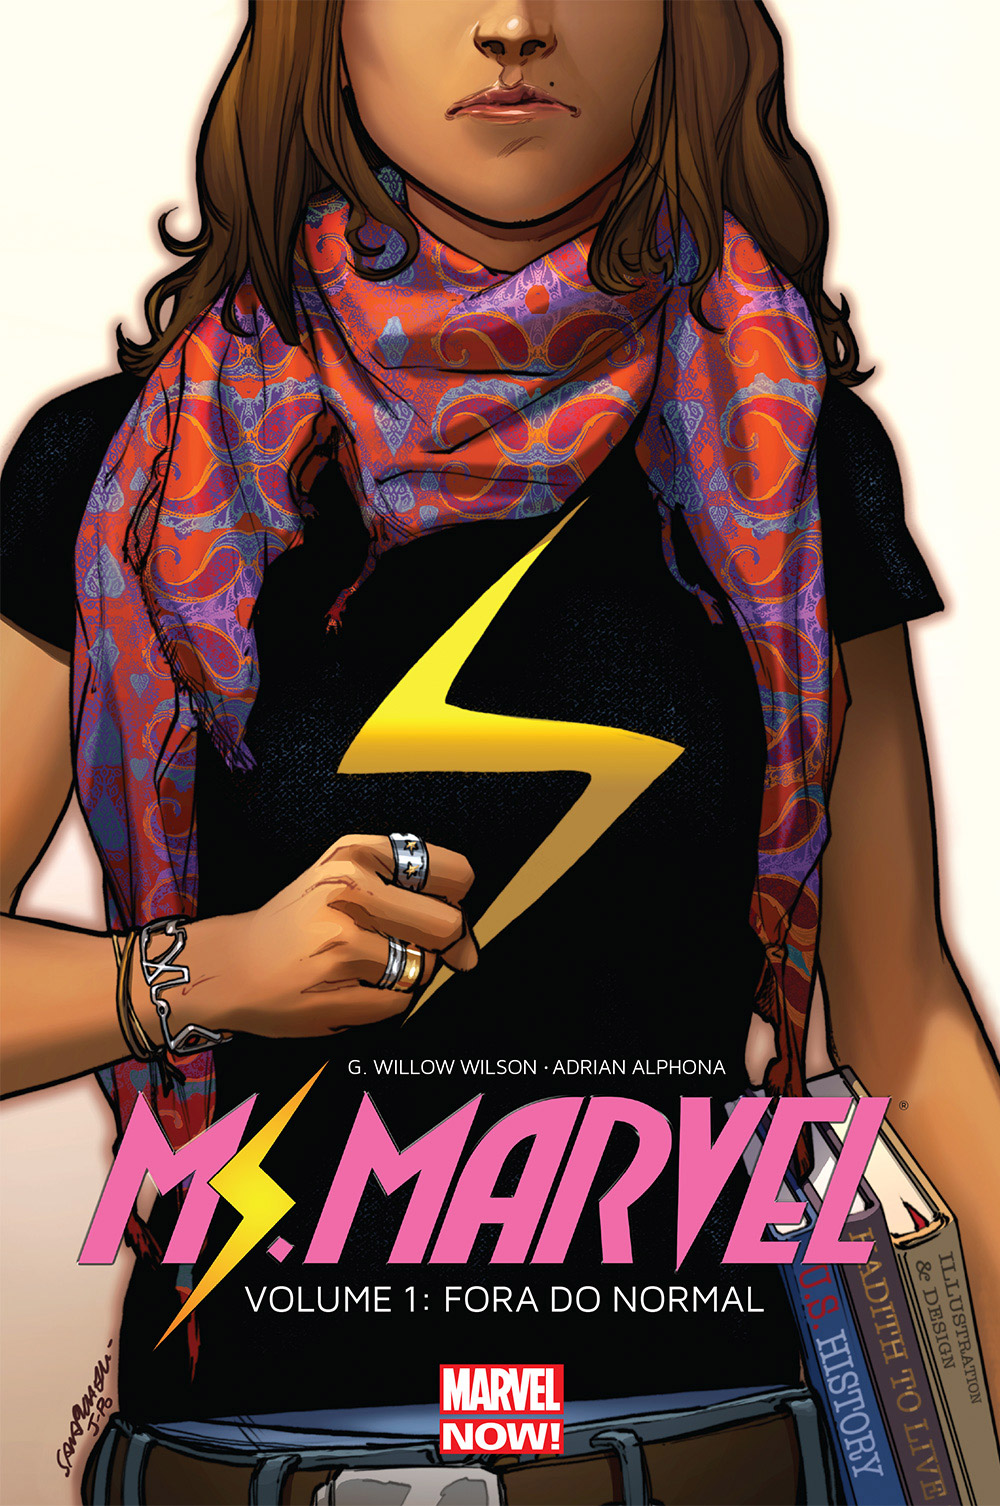 MS. MARVEL vol. 1: FORA DO NORMAL